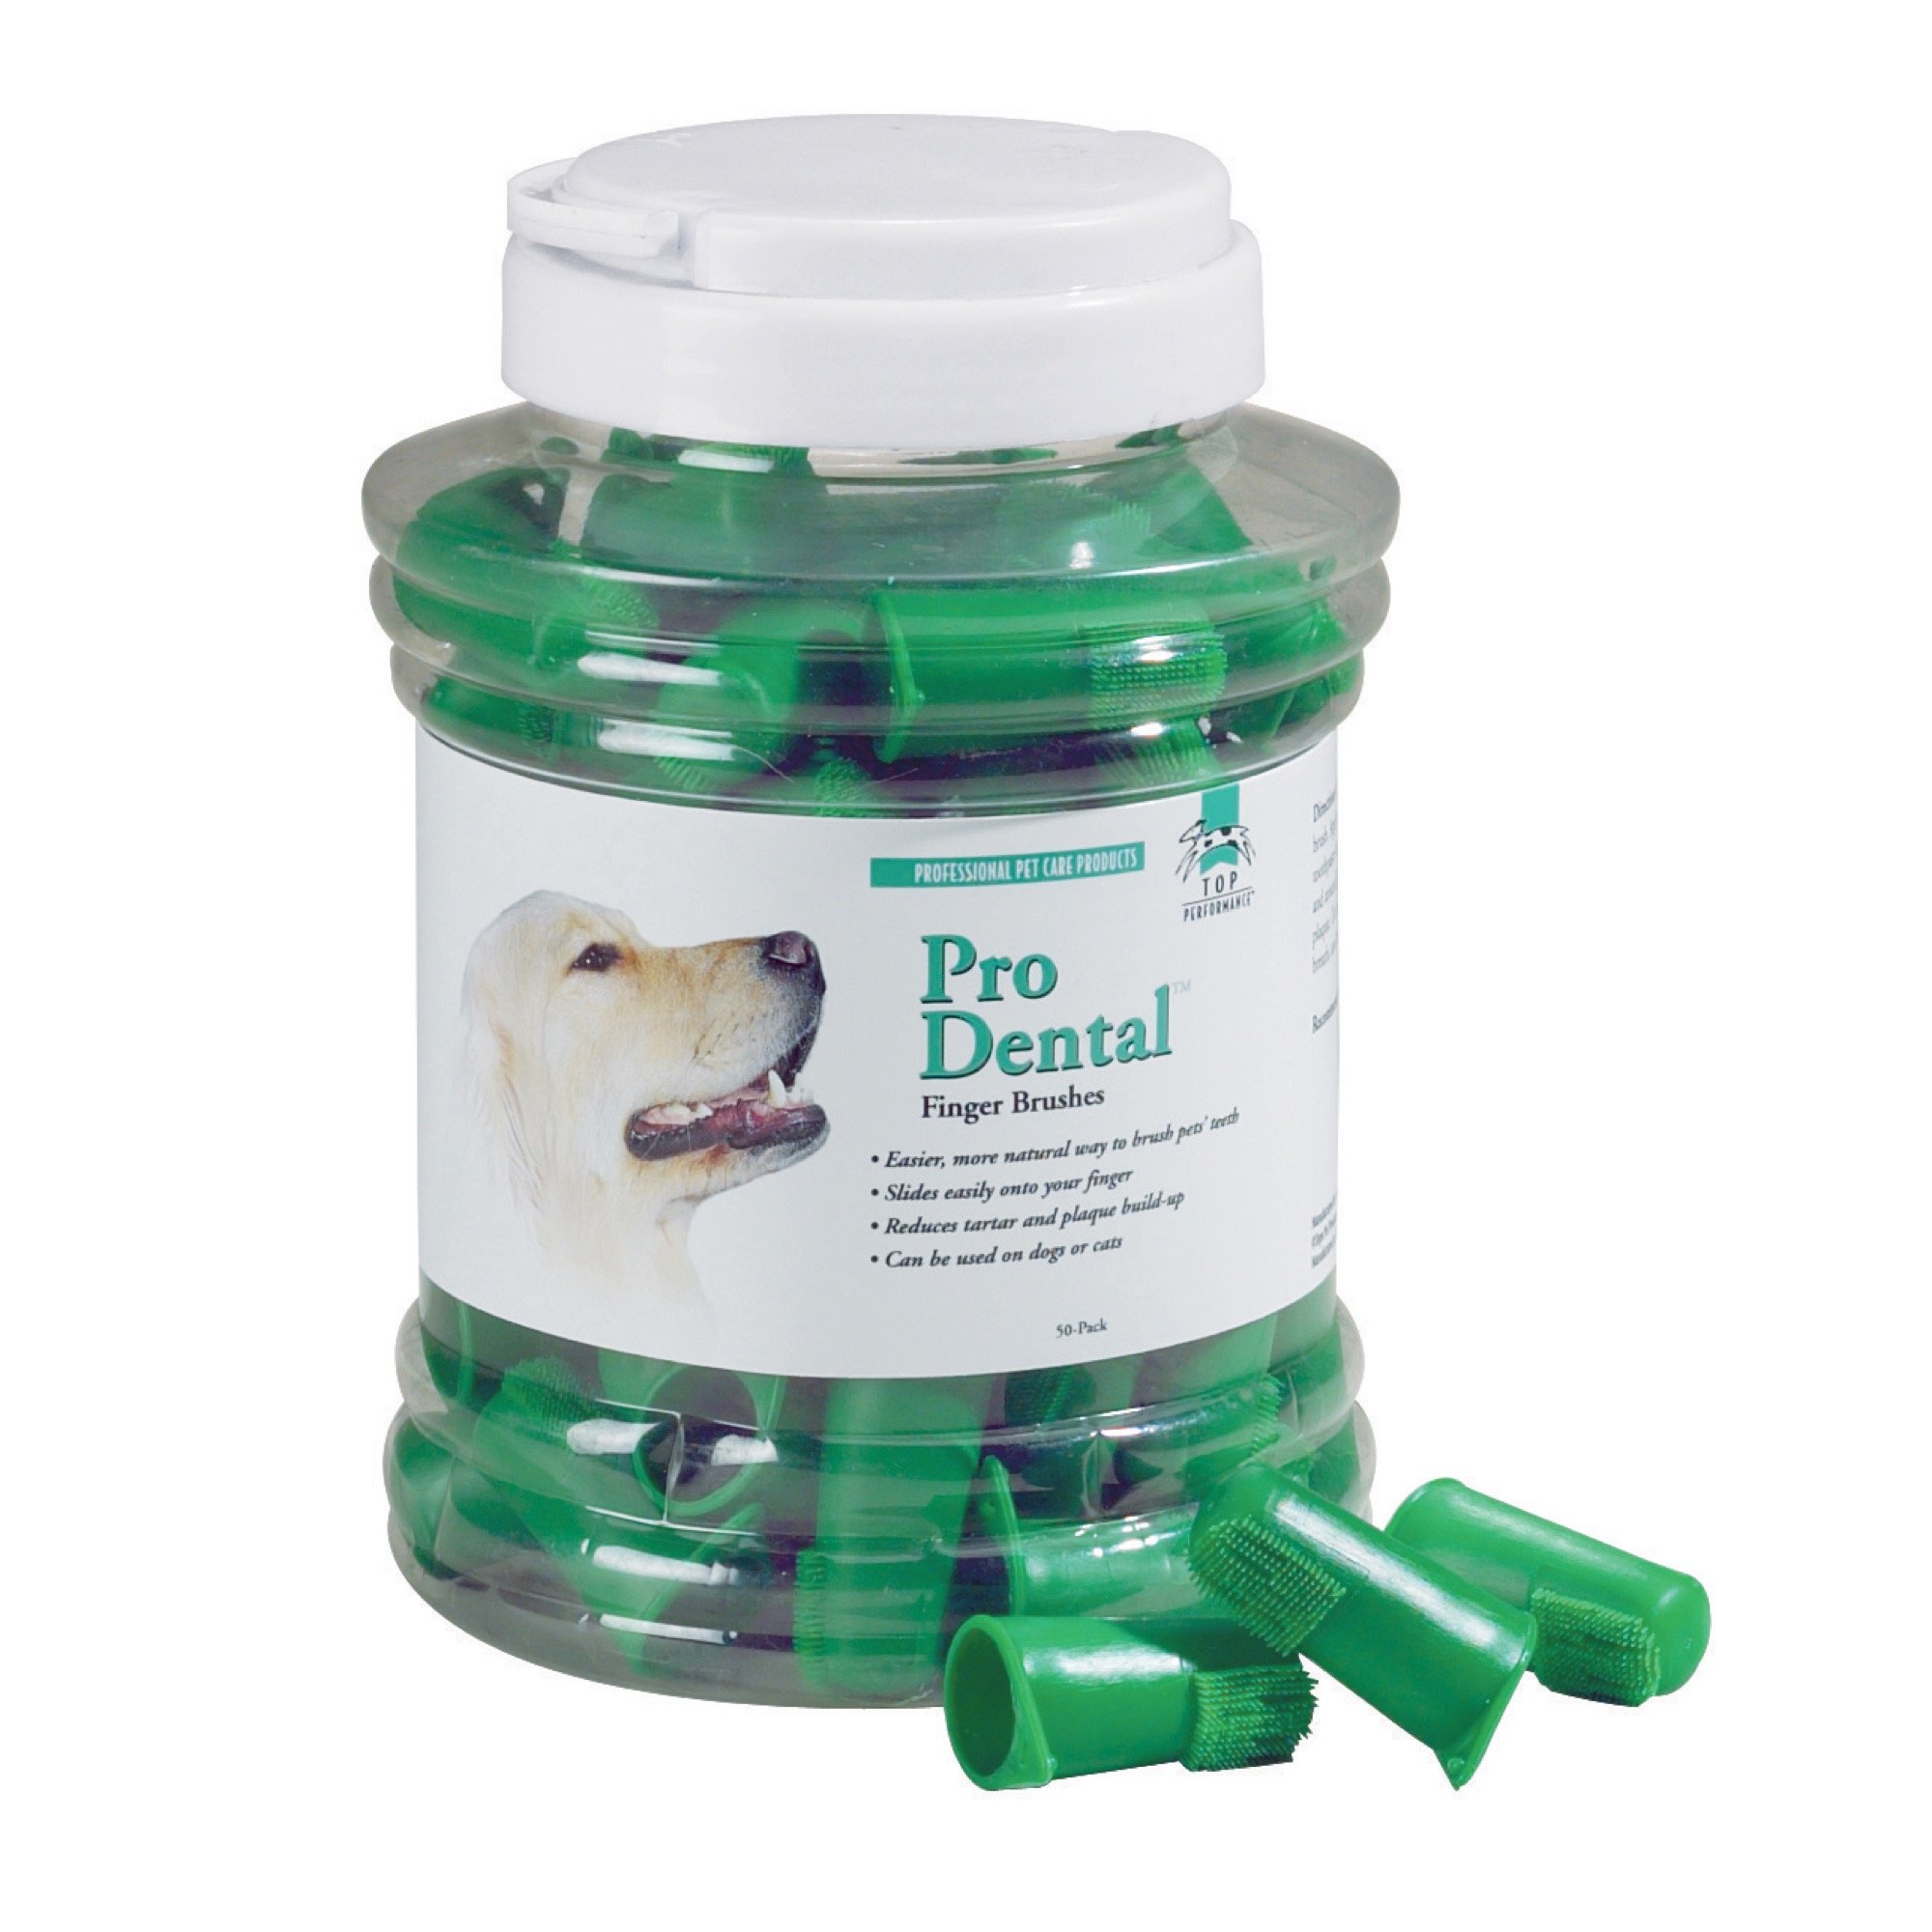 Top Performance ProDental Finger Brushes - Convenient Toothbrushes for Cleaning Pets' Teeth, 50-Pack by Top Performance